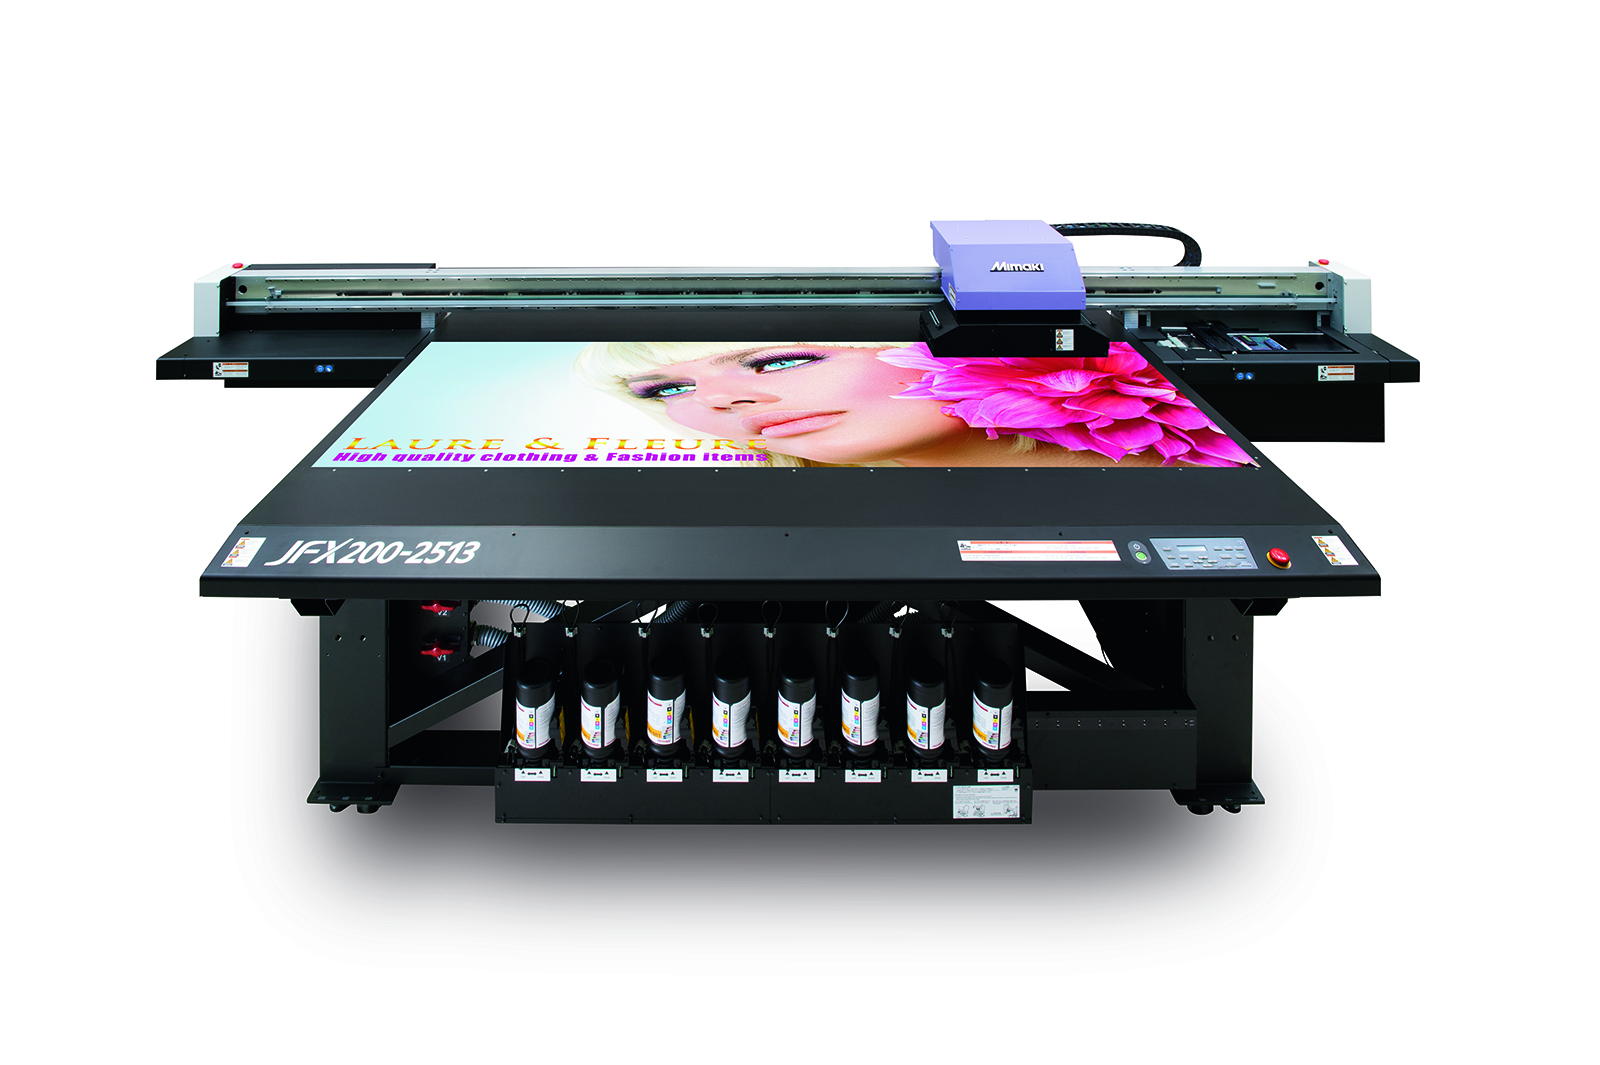 Mimaki's multi-award winning JFX200 flatbed LED UV printer will feature on Hybrid's stand at Sign & Digital UK 2015